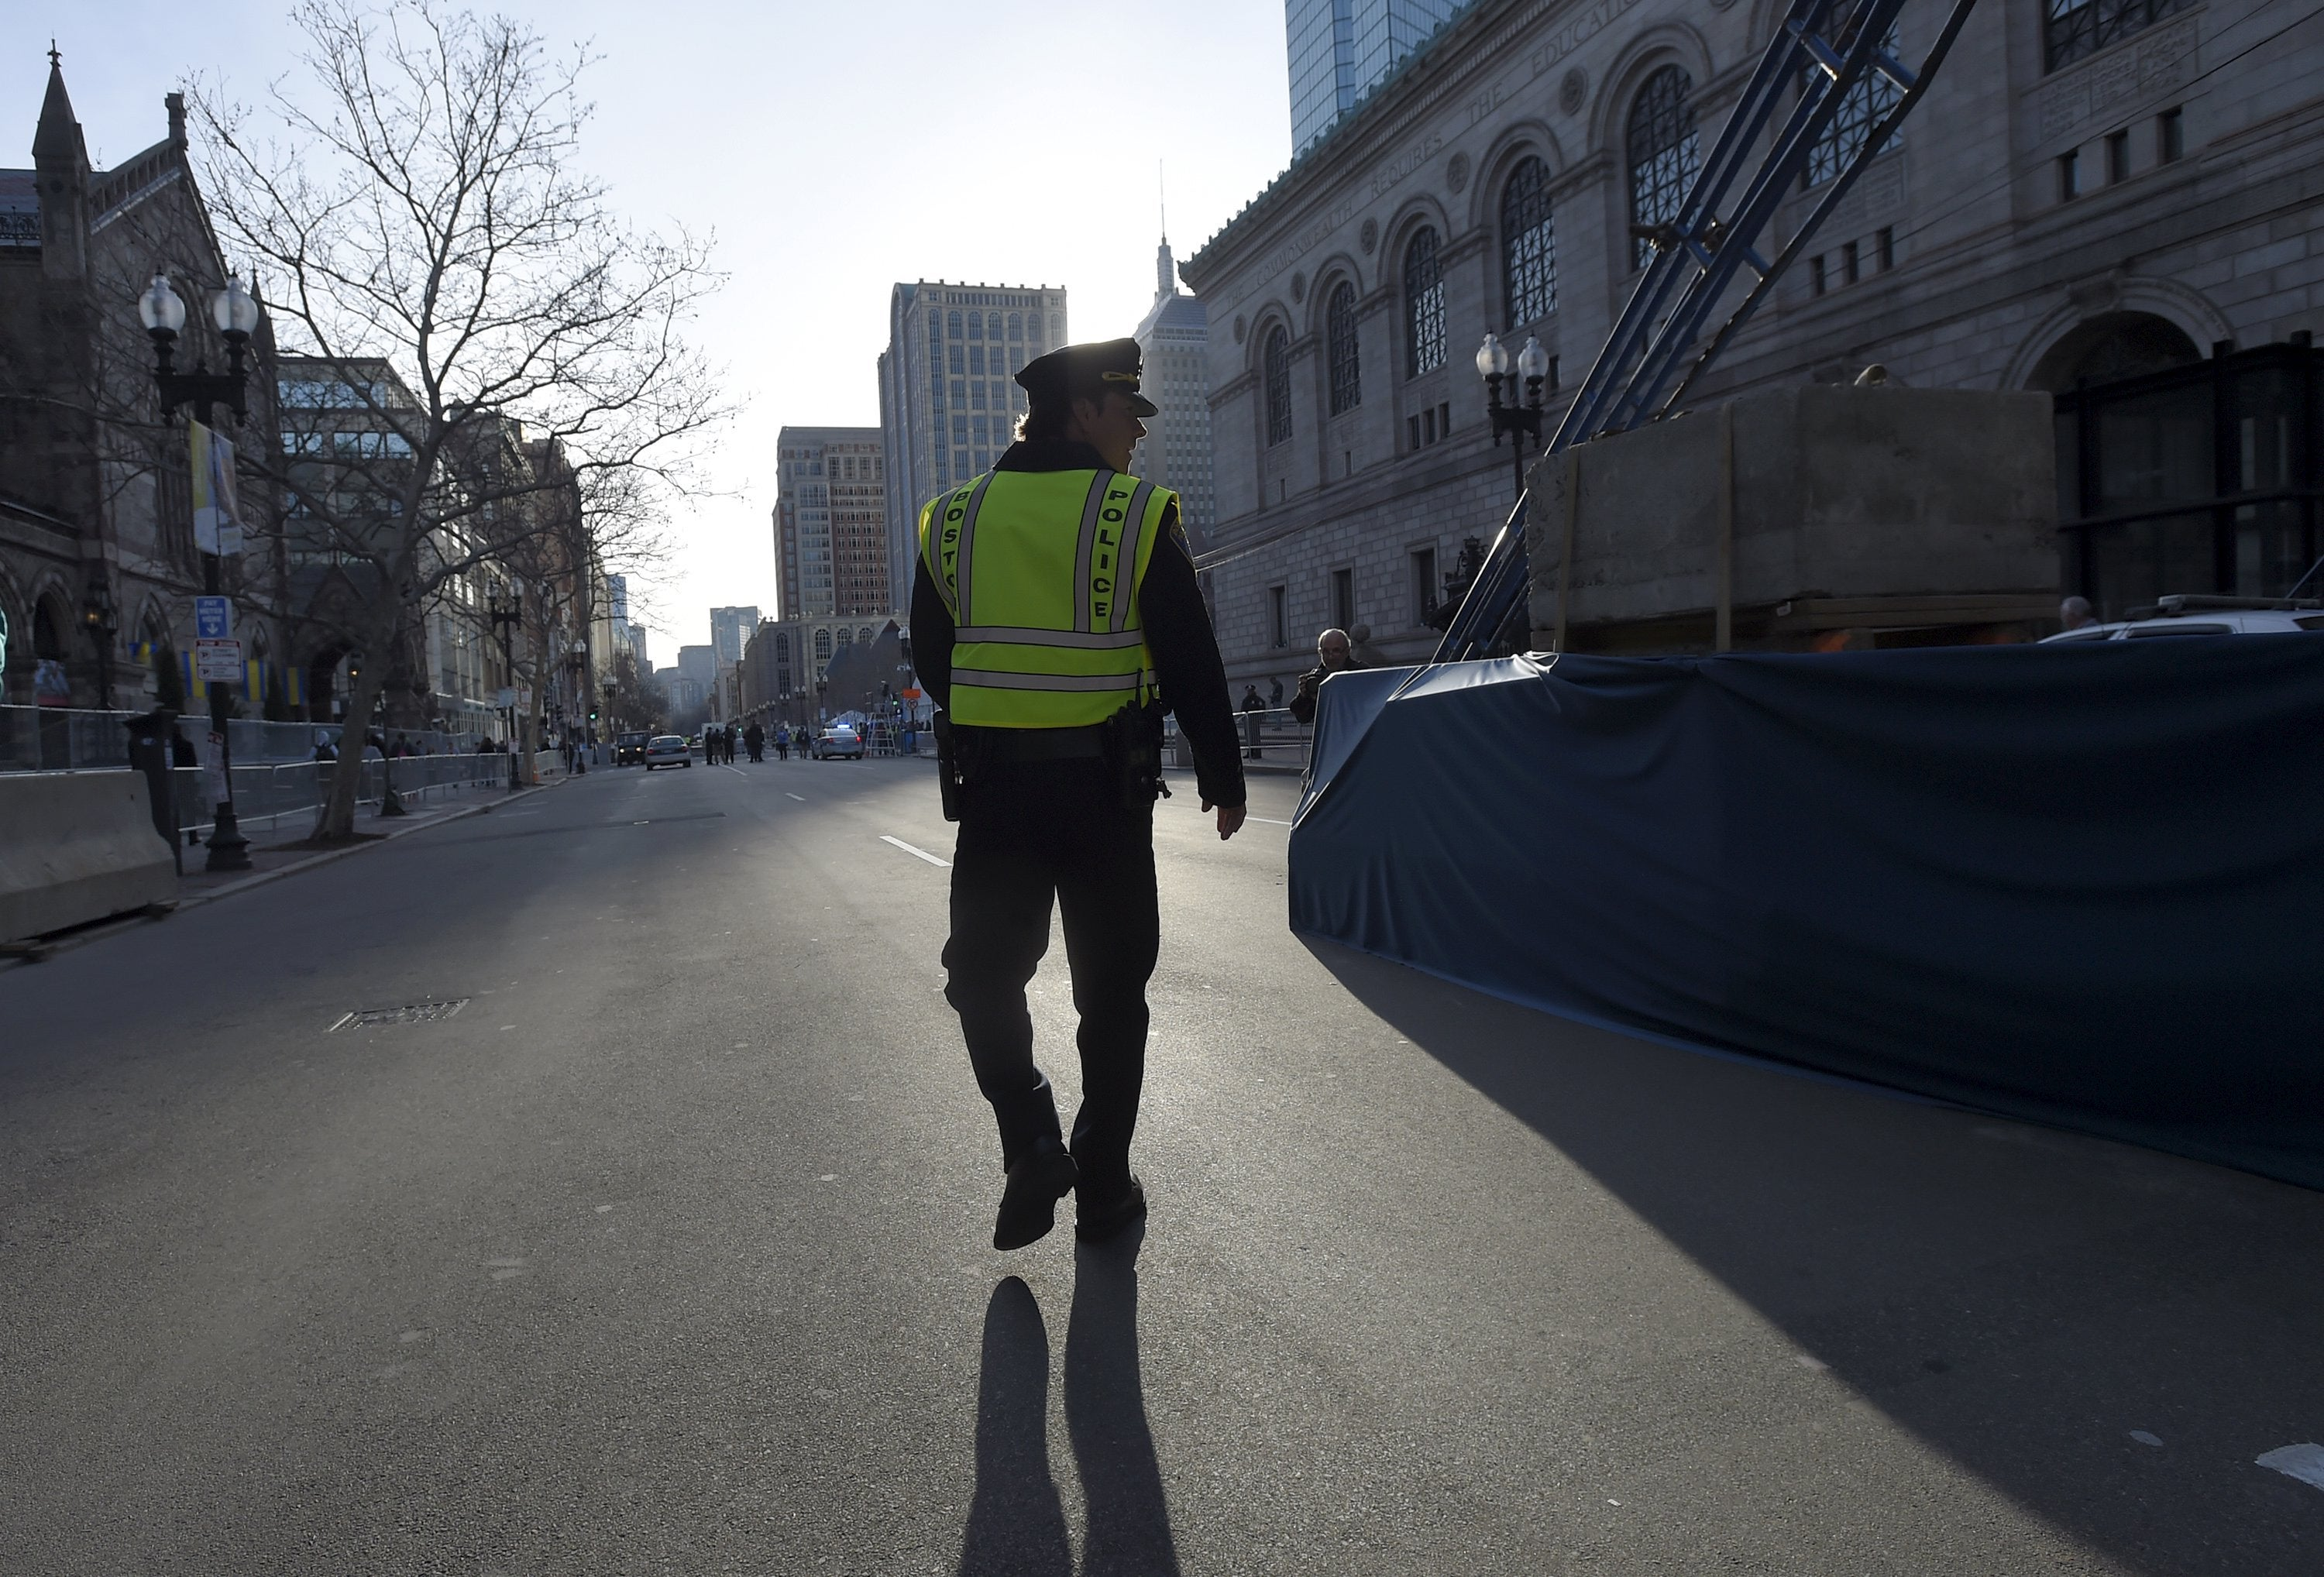 """Actor Mark Wahlberg in the role of a Boston police officer prepares to film a scene for the movie """"Patriot's Day"""" at the finish line before the start of the 120th running of the Boston Marathon in Boston, Massachusetts April 18, 2016."""